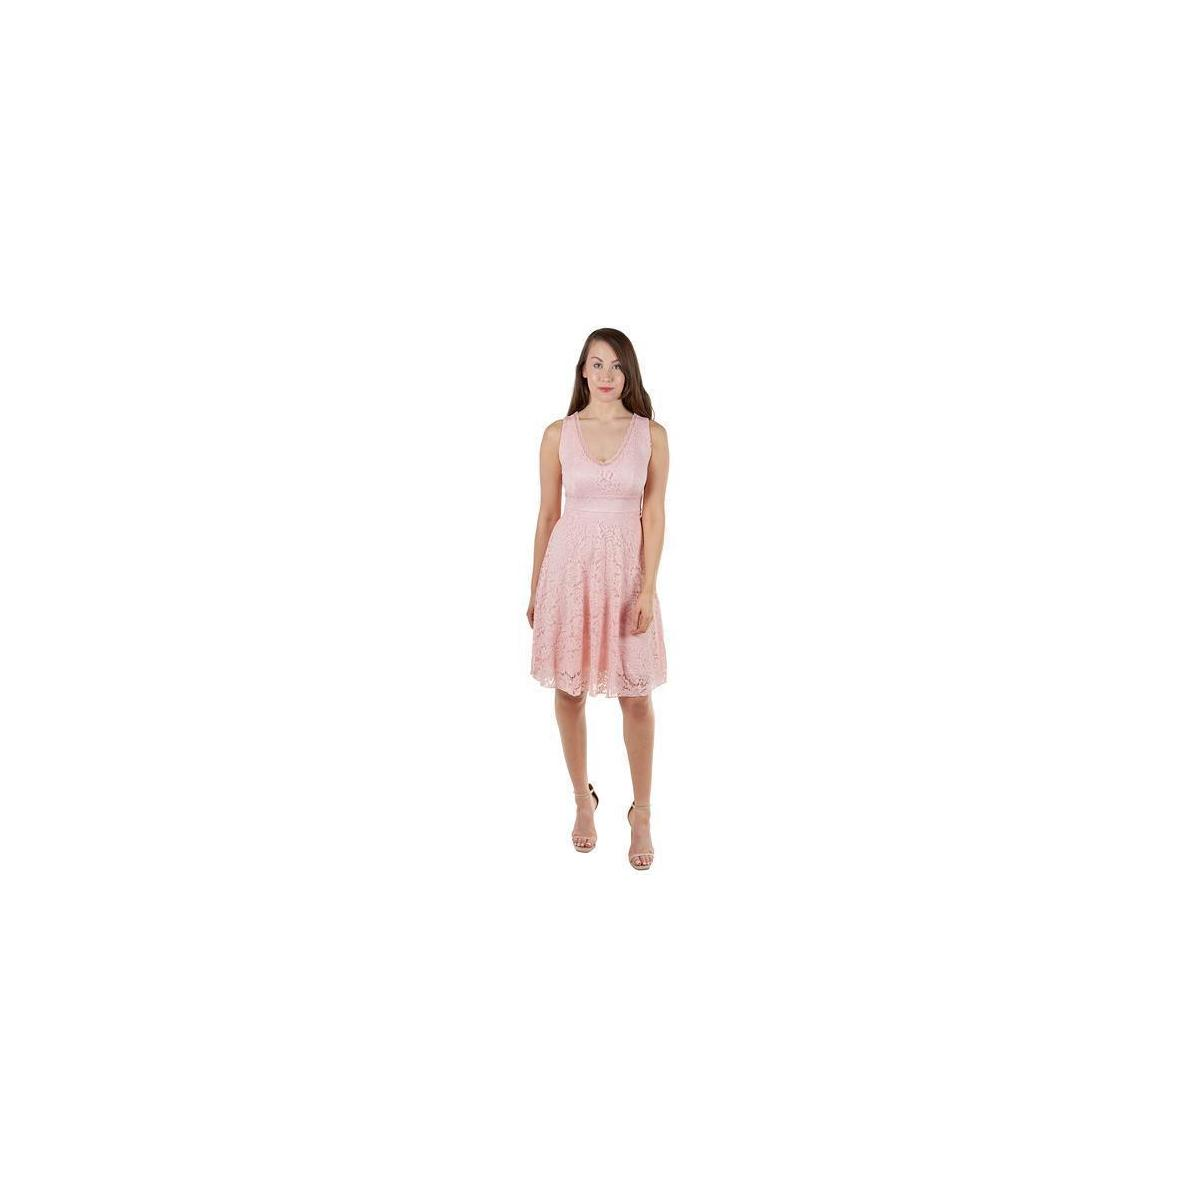 Made in Italy - Women's Elegant Floral Lace Cocktail Party Flowy Knee Length Dress (7 Colors available)